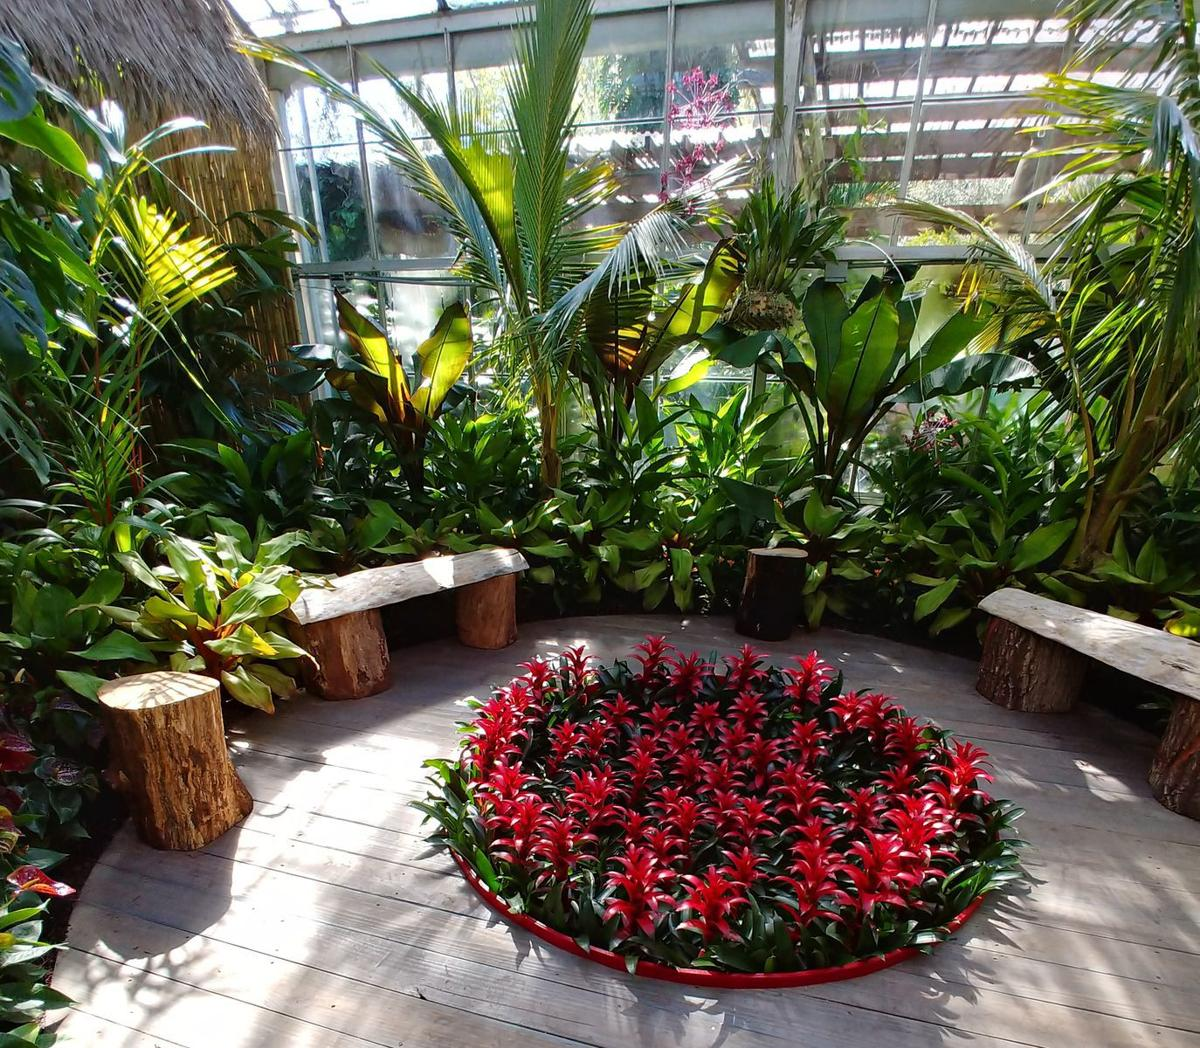 Fire pit warms the greenhouse usually used to display orchids at Marie Selby Botanical Gardens